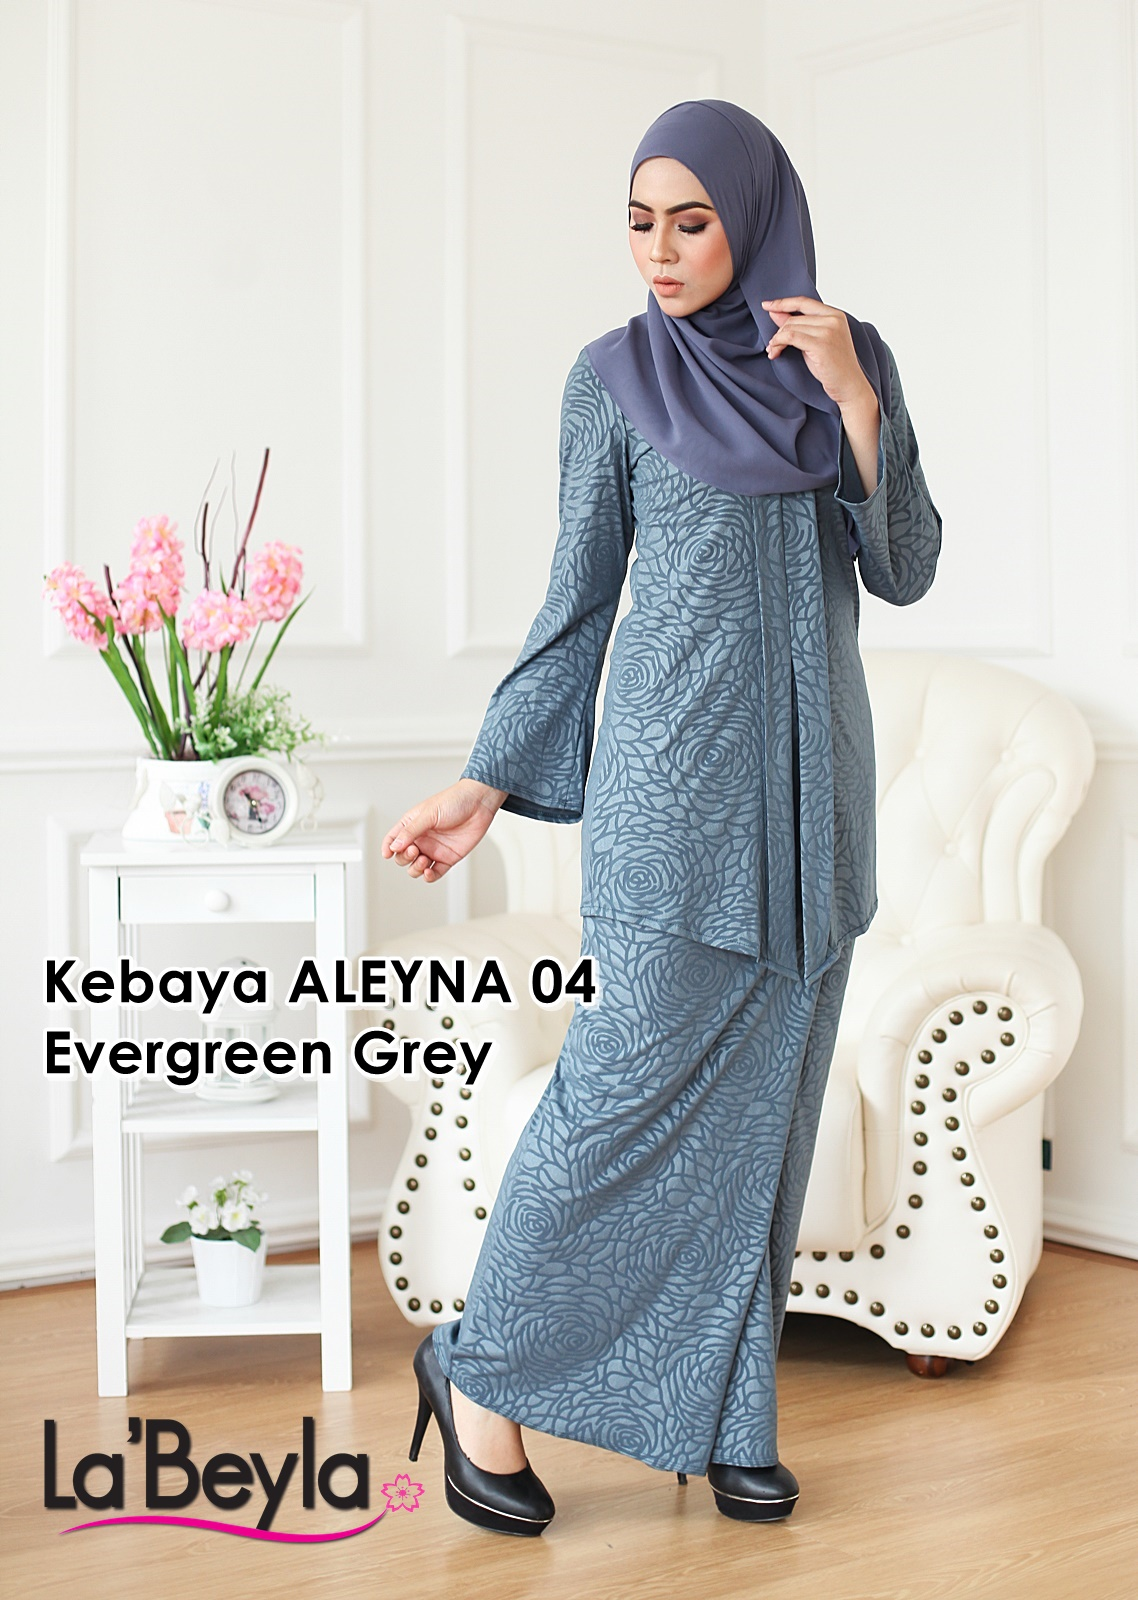 Kebaya Aleyna 04 - Evergreen Grey